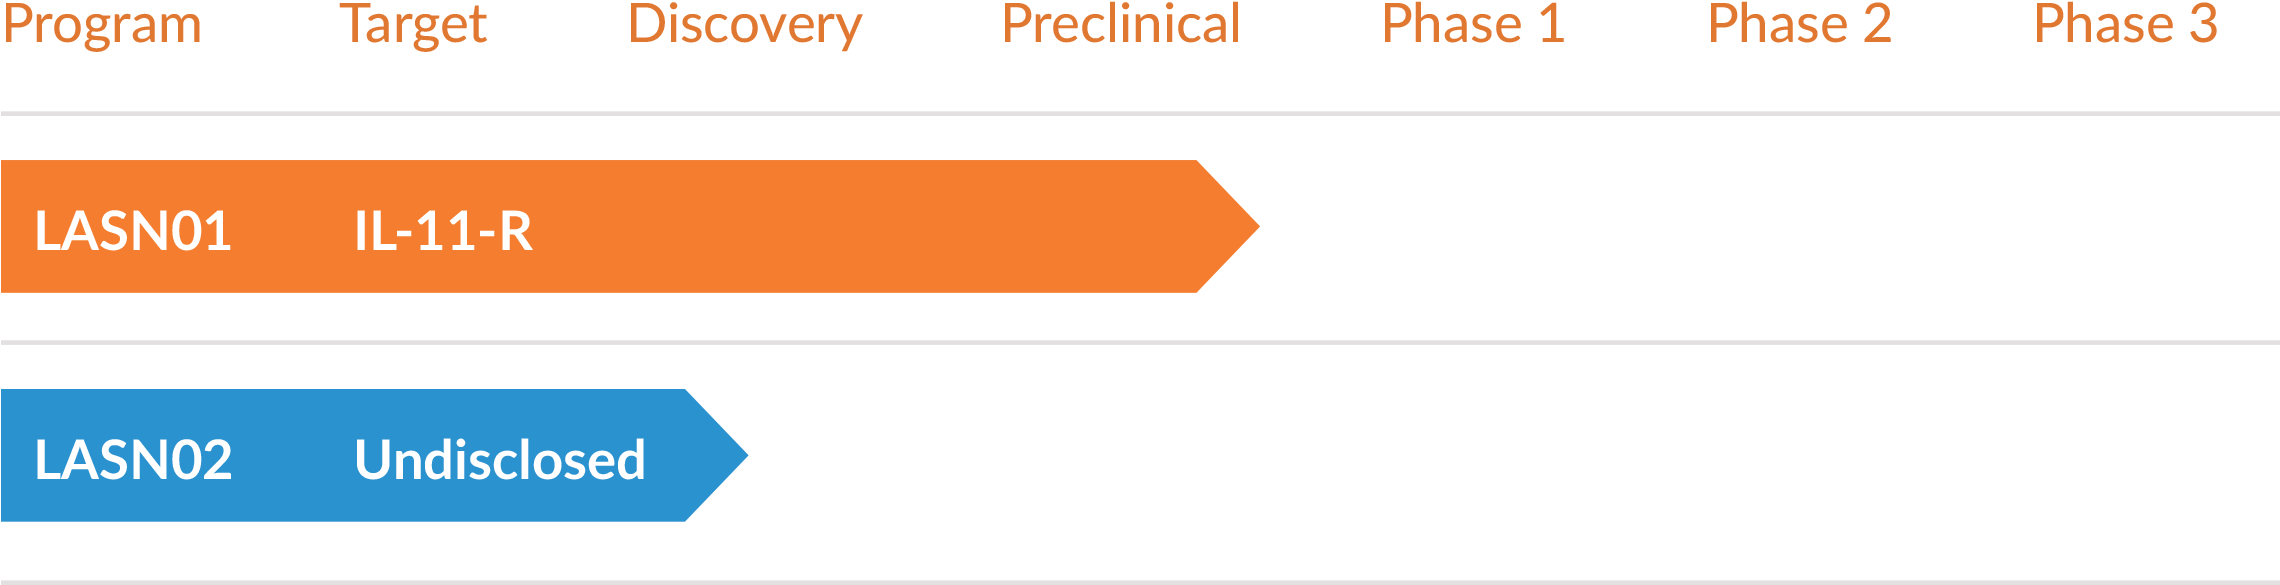 Lassen Therapeutics pipeline. LAS- N01 in preclinical, one additional undisclosed target in discovery